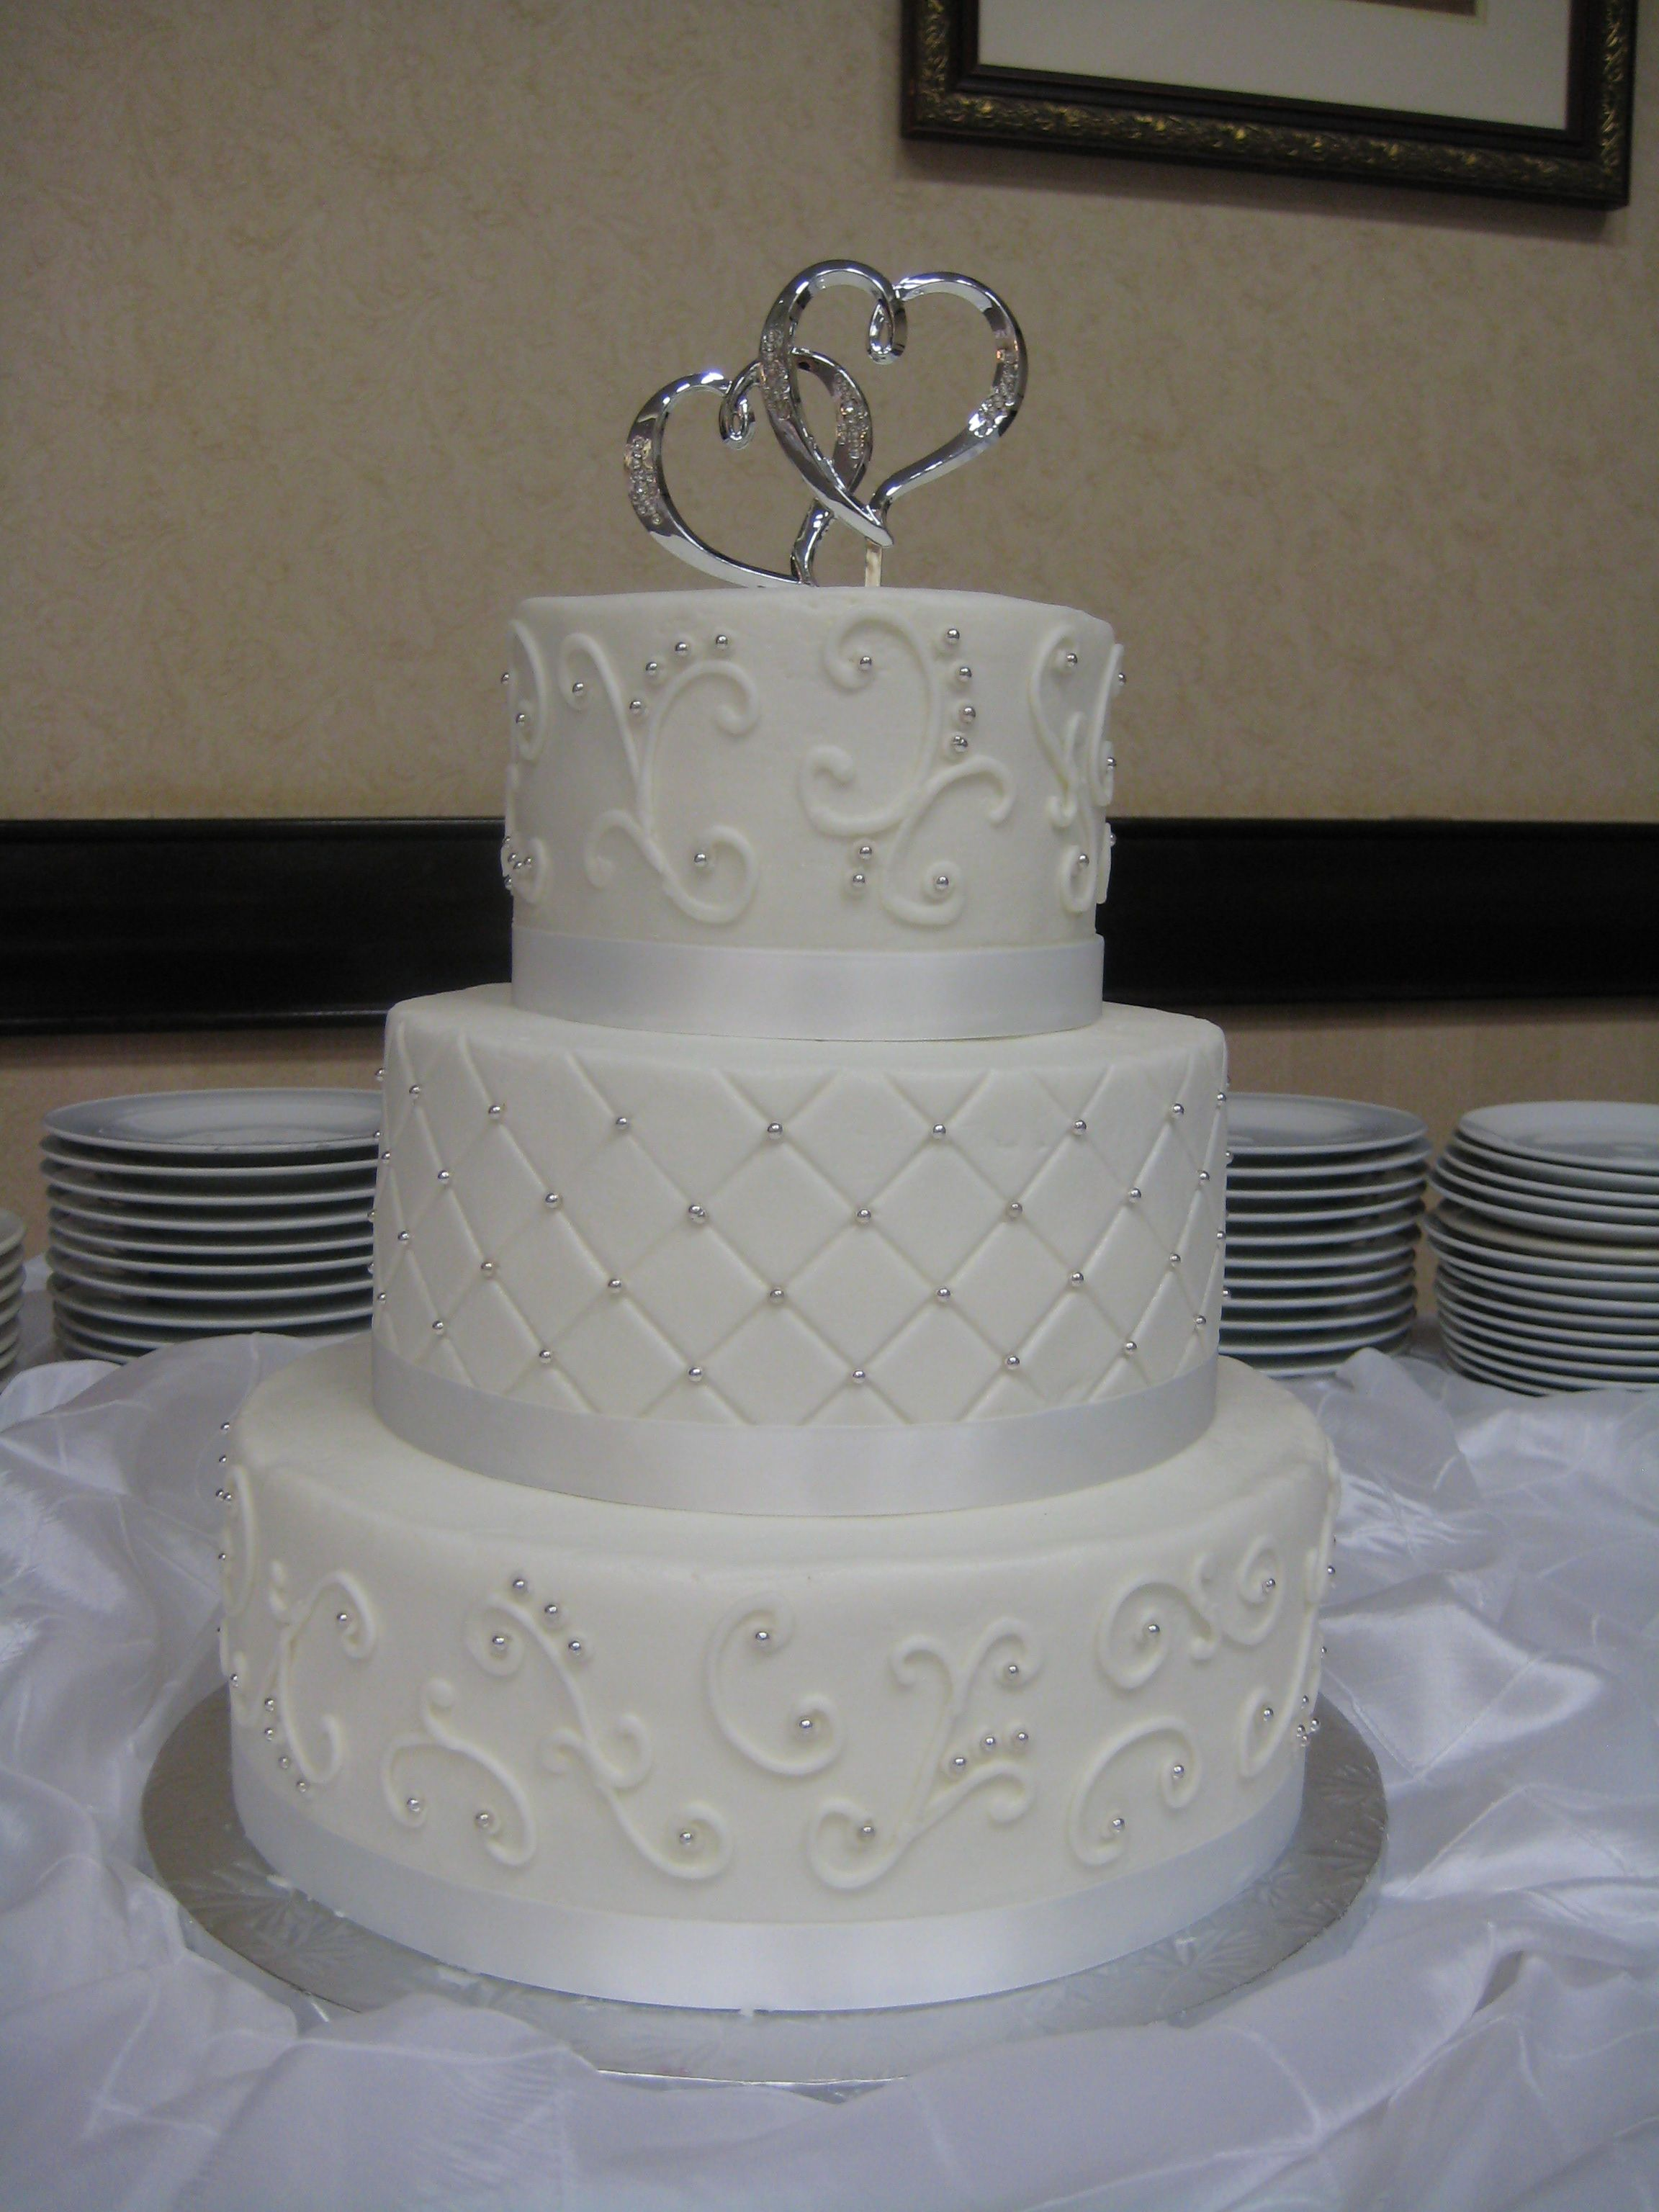 3 Tier Round Wedding Cake With Scrollwork And Diamond